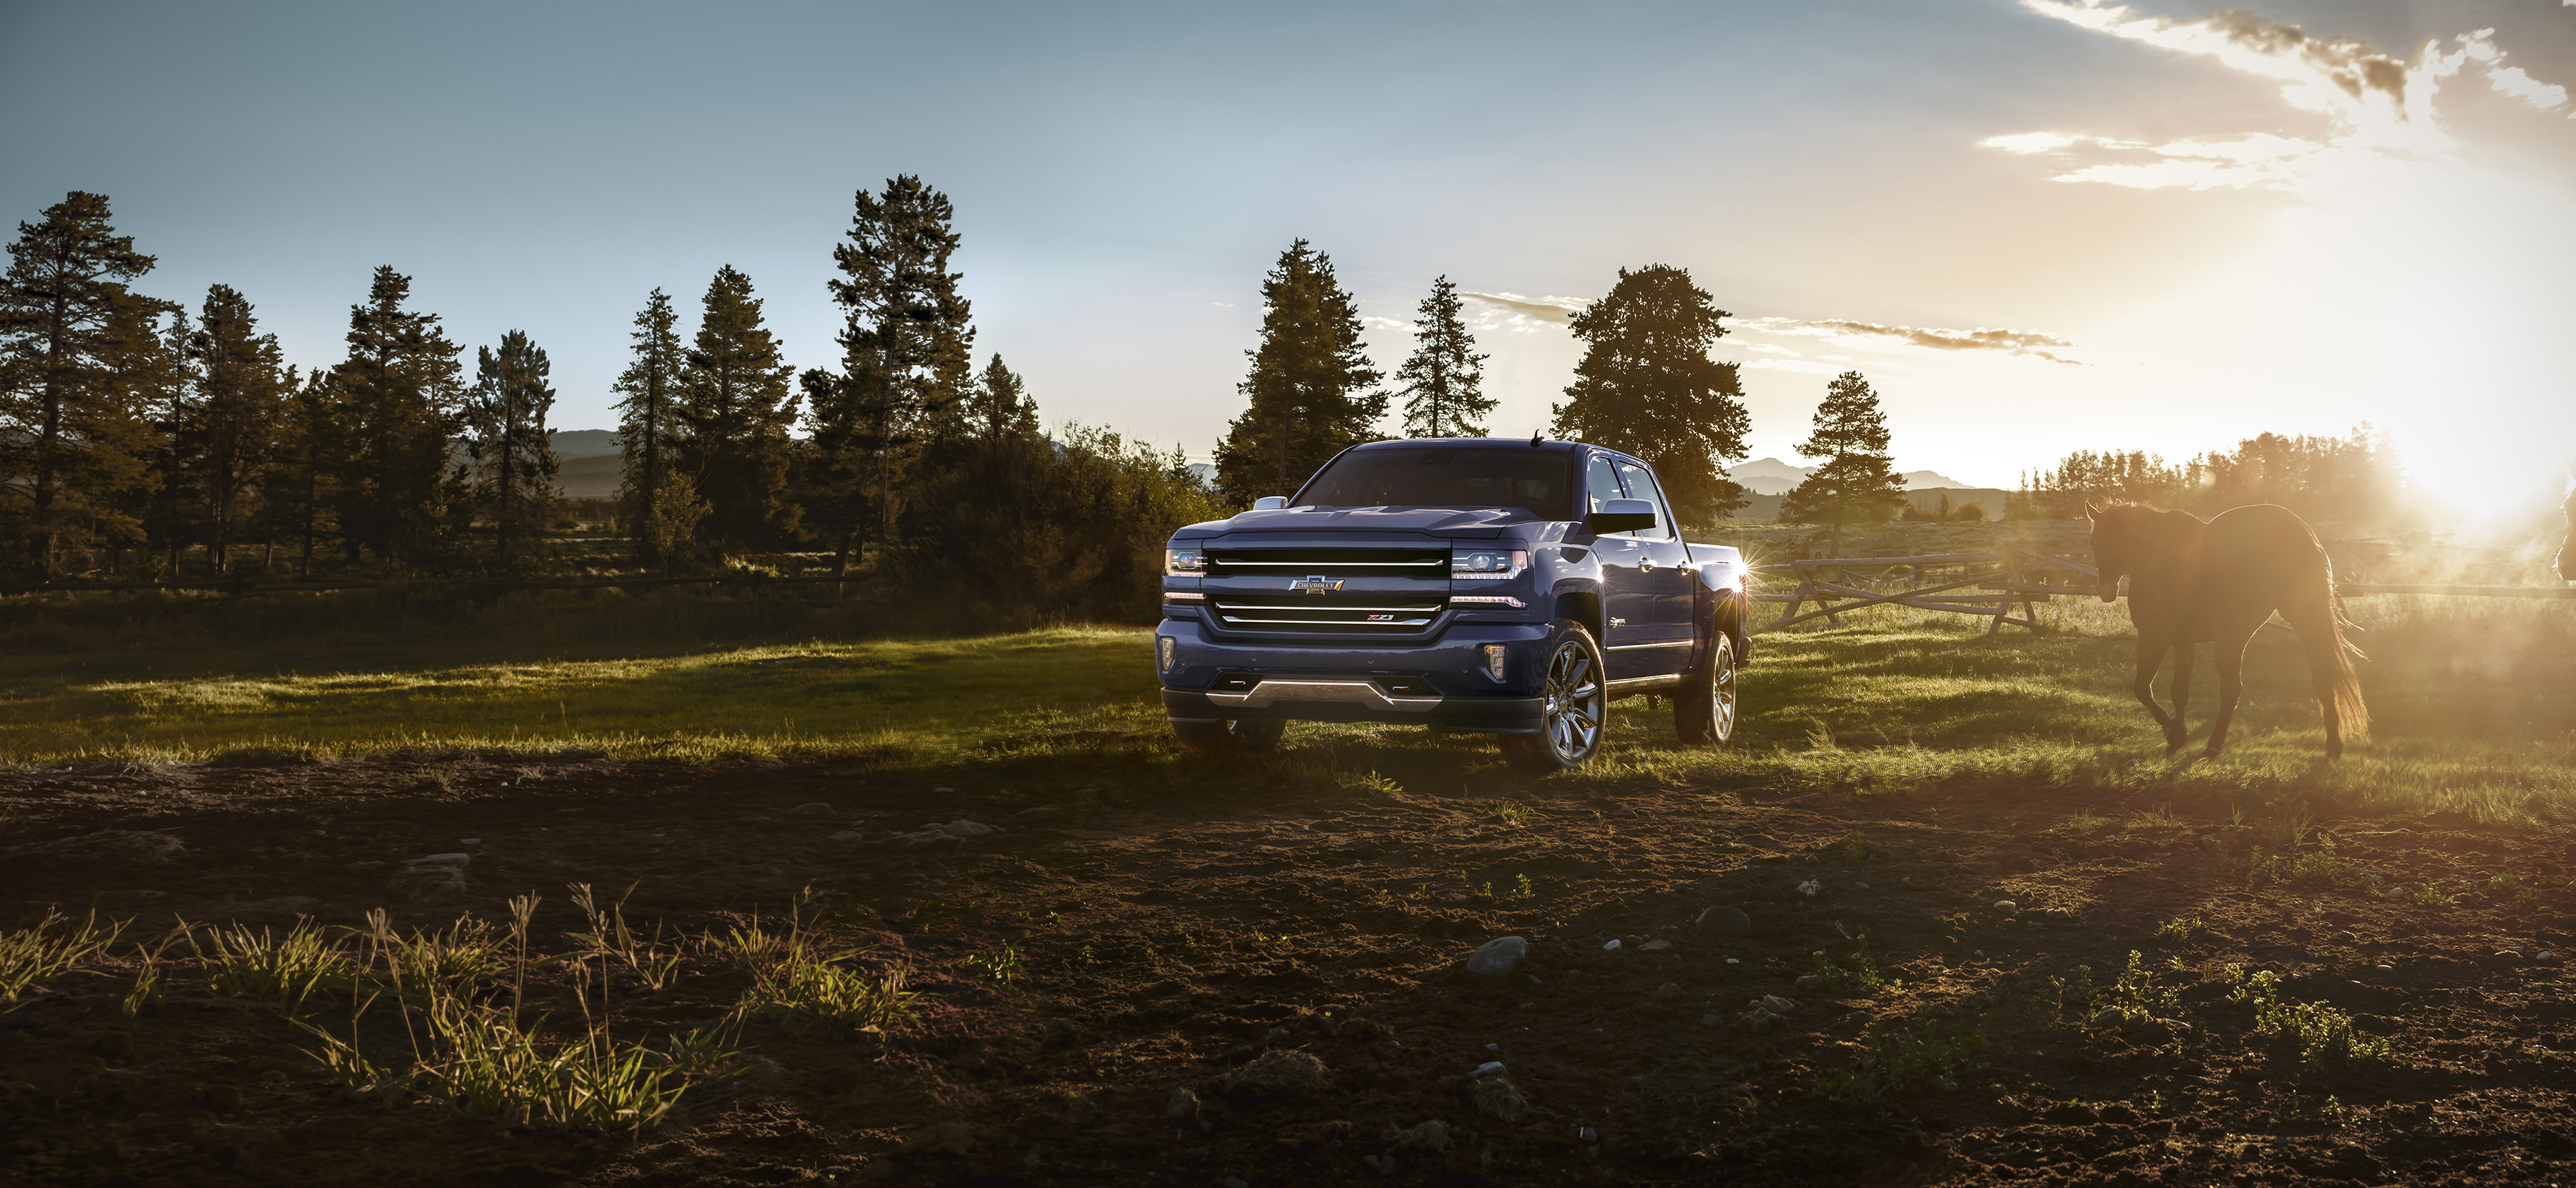 GM Celebrates 100 Years of Trucks With New Special Editions GM